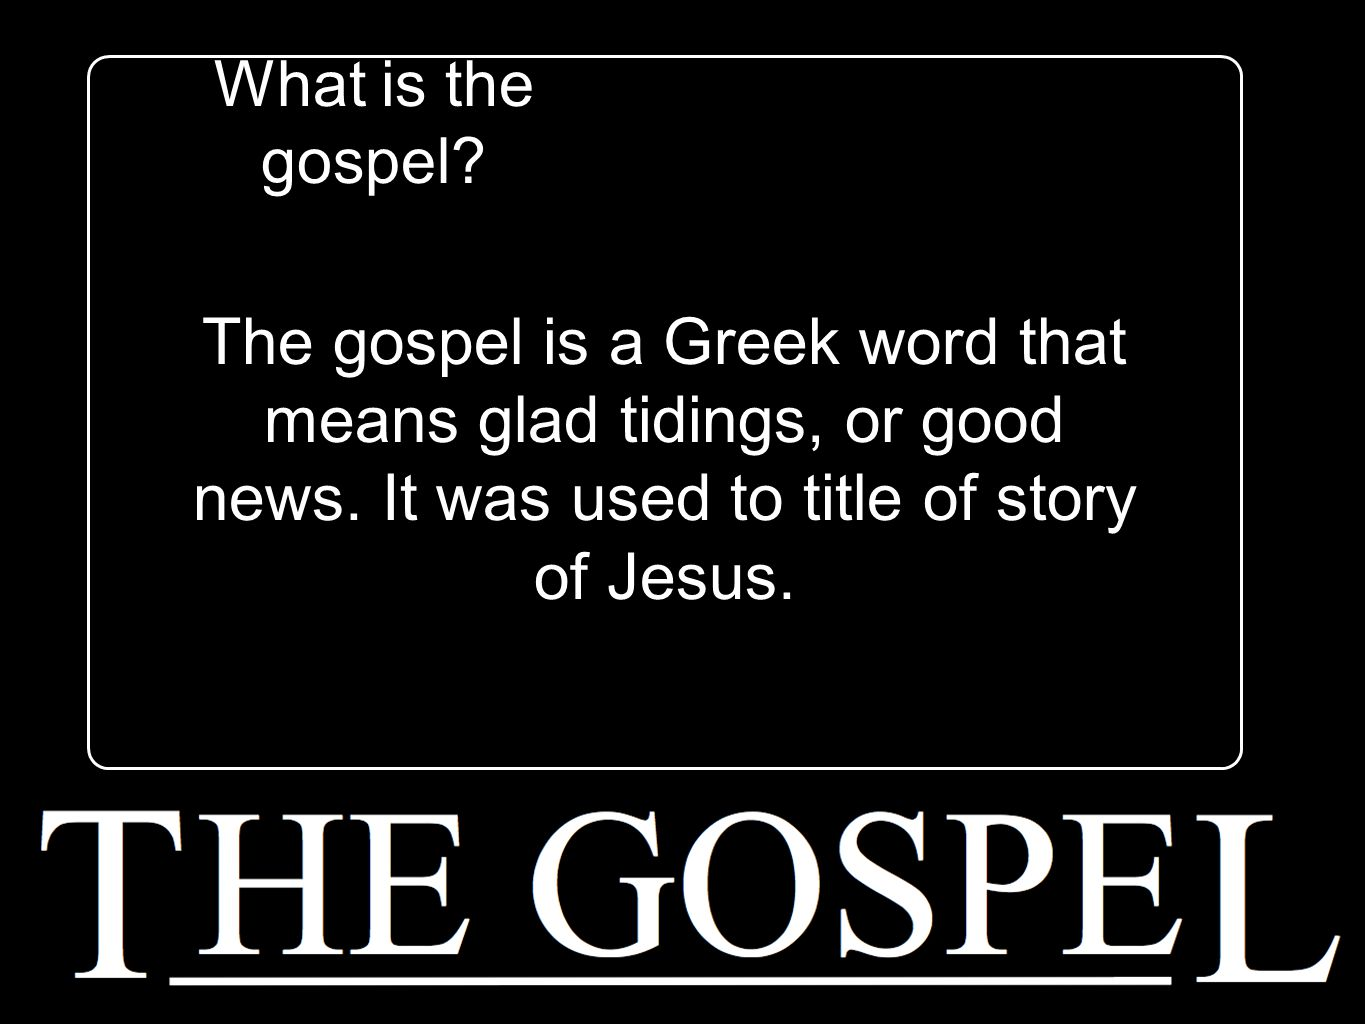 What is the gospel. The gospel is a Greek word that means glad tidings, or good news.